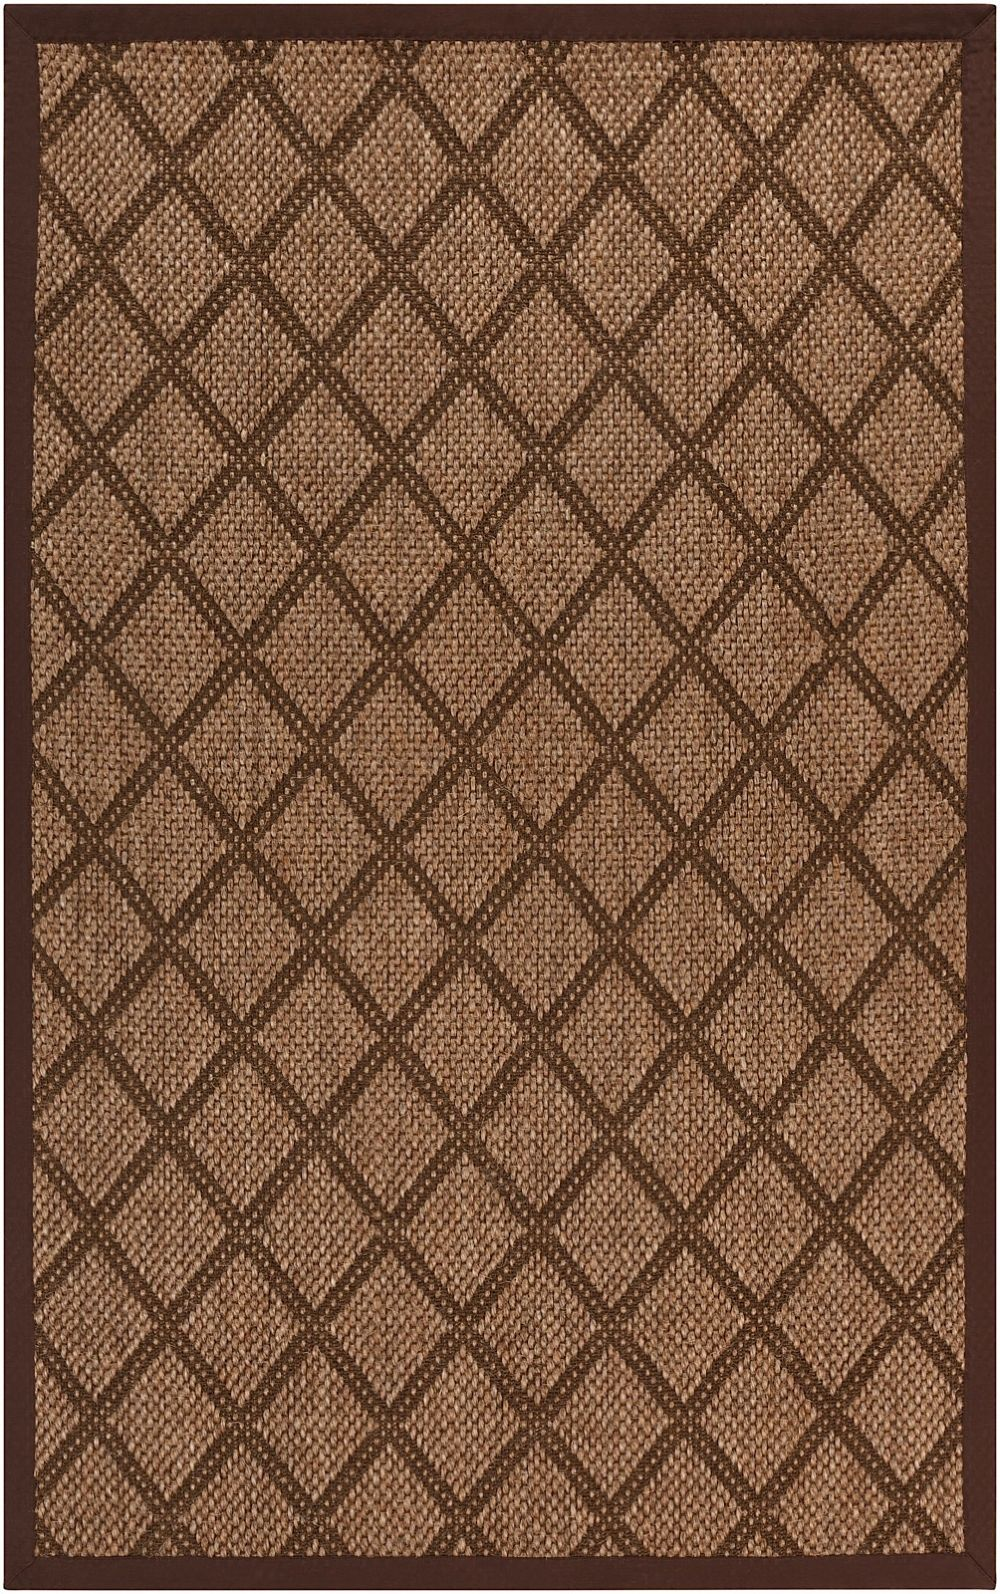 surya argyle natural fiber area rug collection